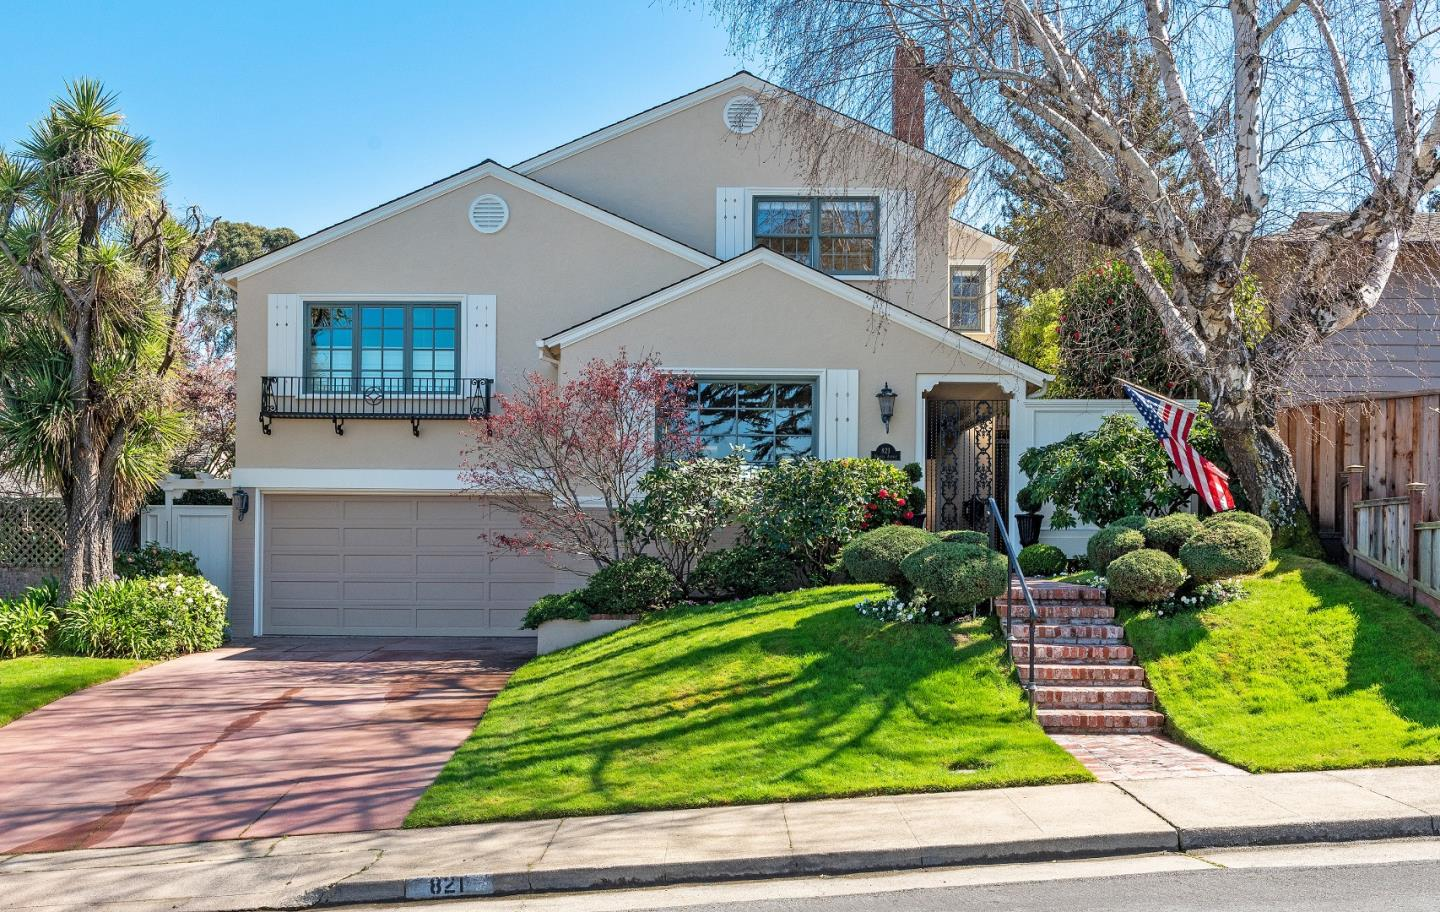 Fabulous house in a great neighborhood with close proximity to Baywood Elementary and Aragon High. Custom built-in cabinetry throughout. The family room has built-ins on either side of the brick faced fireplace. A custom staircase with large skylight and beams. Large spacious bedrooms with natural light. The master suite boasts a large walk-in closet and features a newly remodeled bathroom. Mature landscaping, rear brick patio with trellis and arbor designed as an entertainers backyard with lots of privacy. Don't miss this great opportunity.